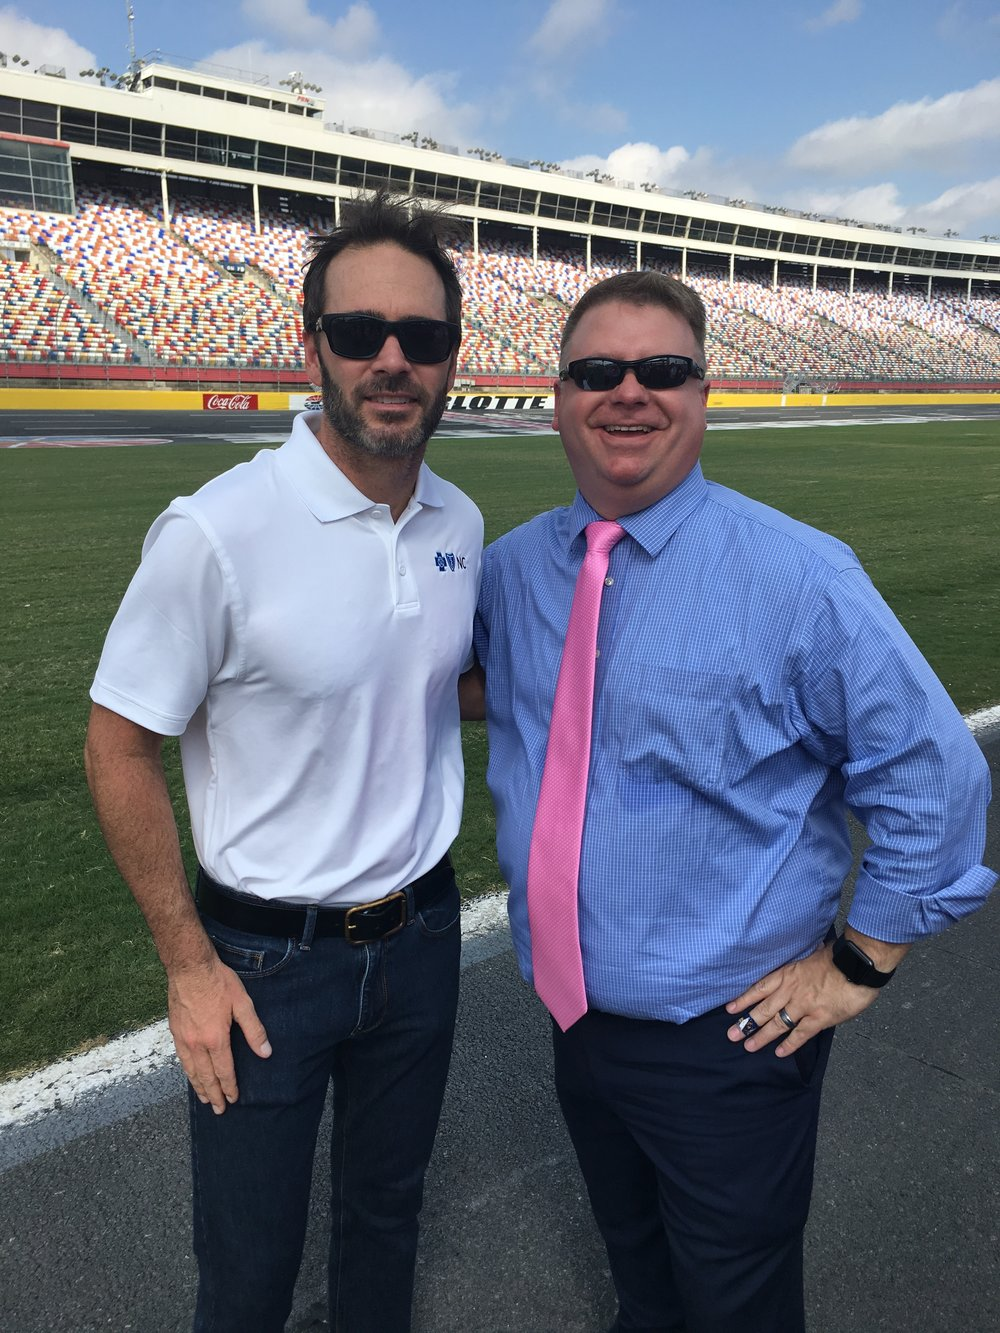 Jimmie Johnson asked if we could swap rides for the day; I told him I didn't think he could handle my Impala.